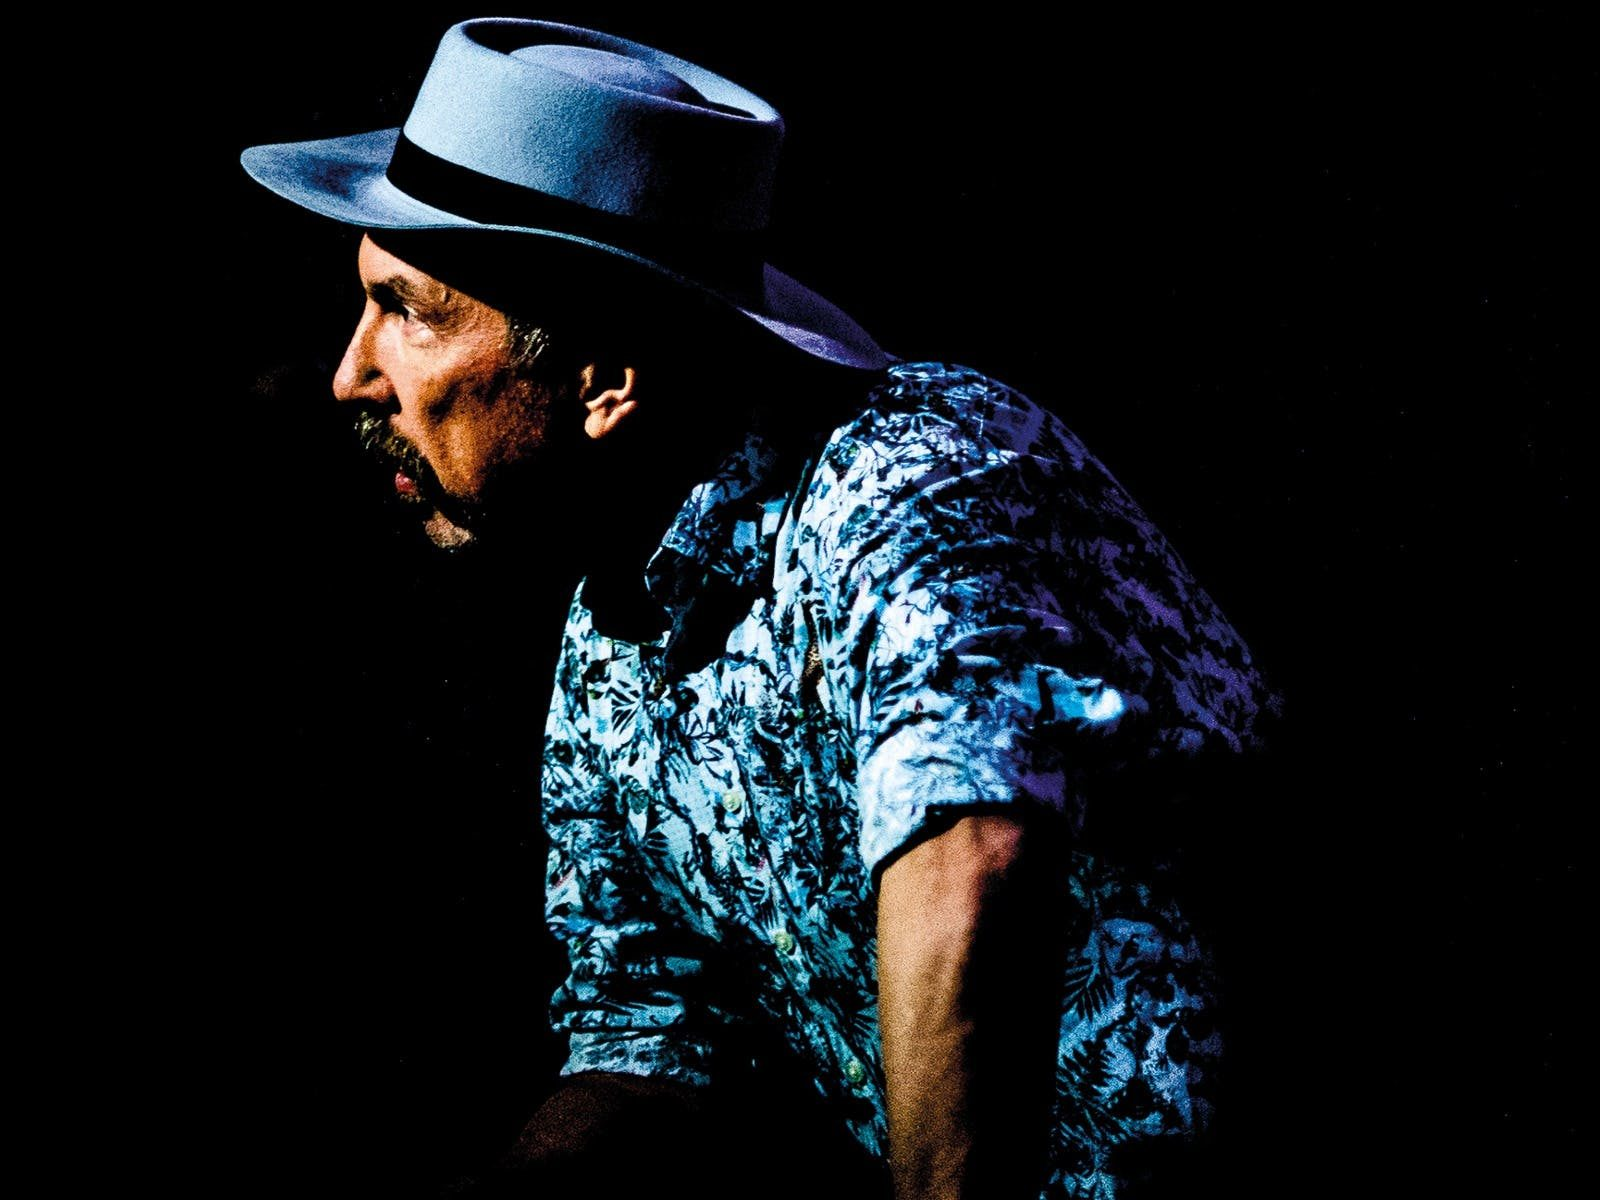 Side profile of man wearing blue shirt and hat